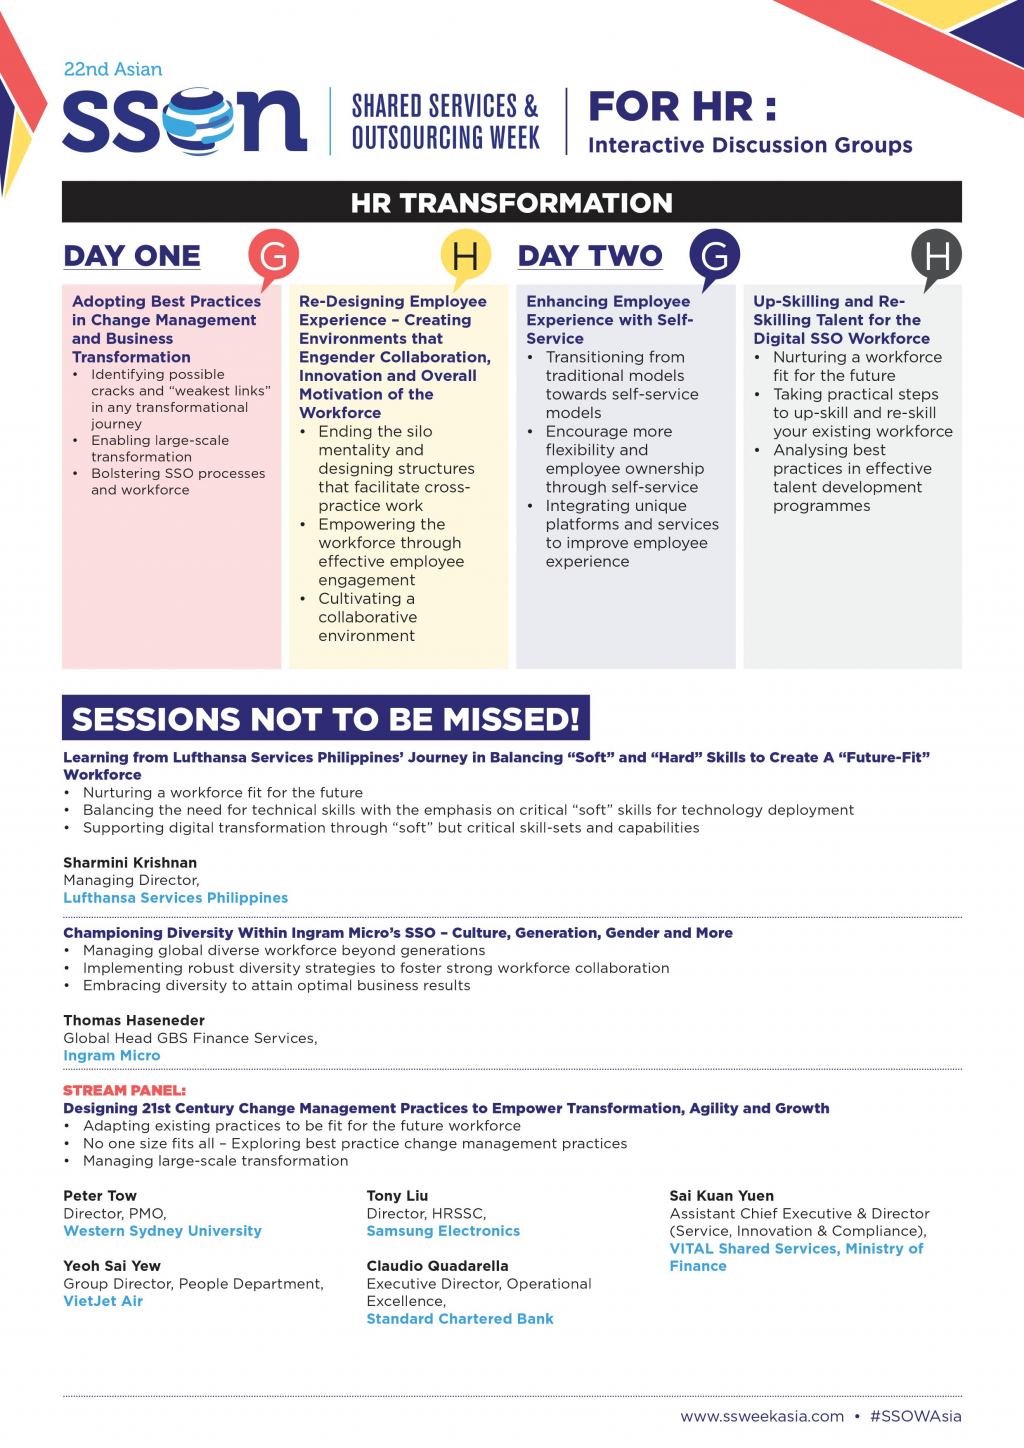 HR Transformation Flyer